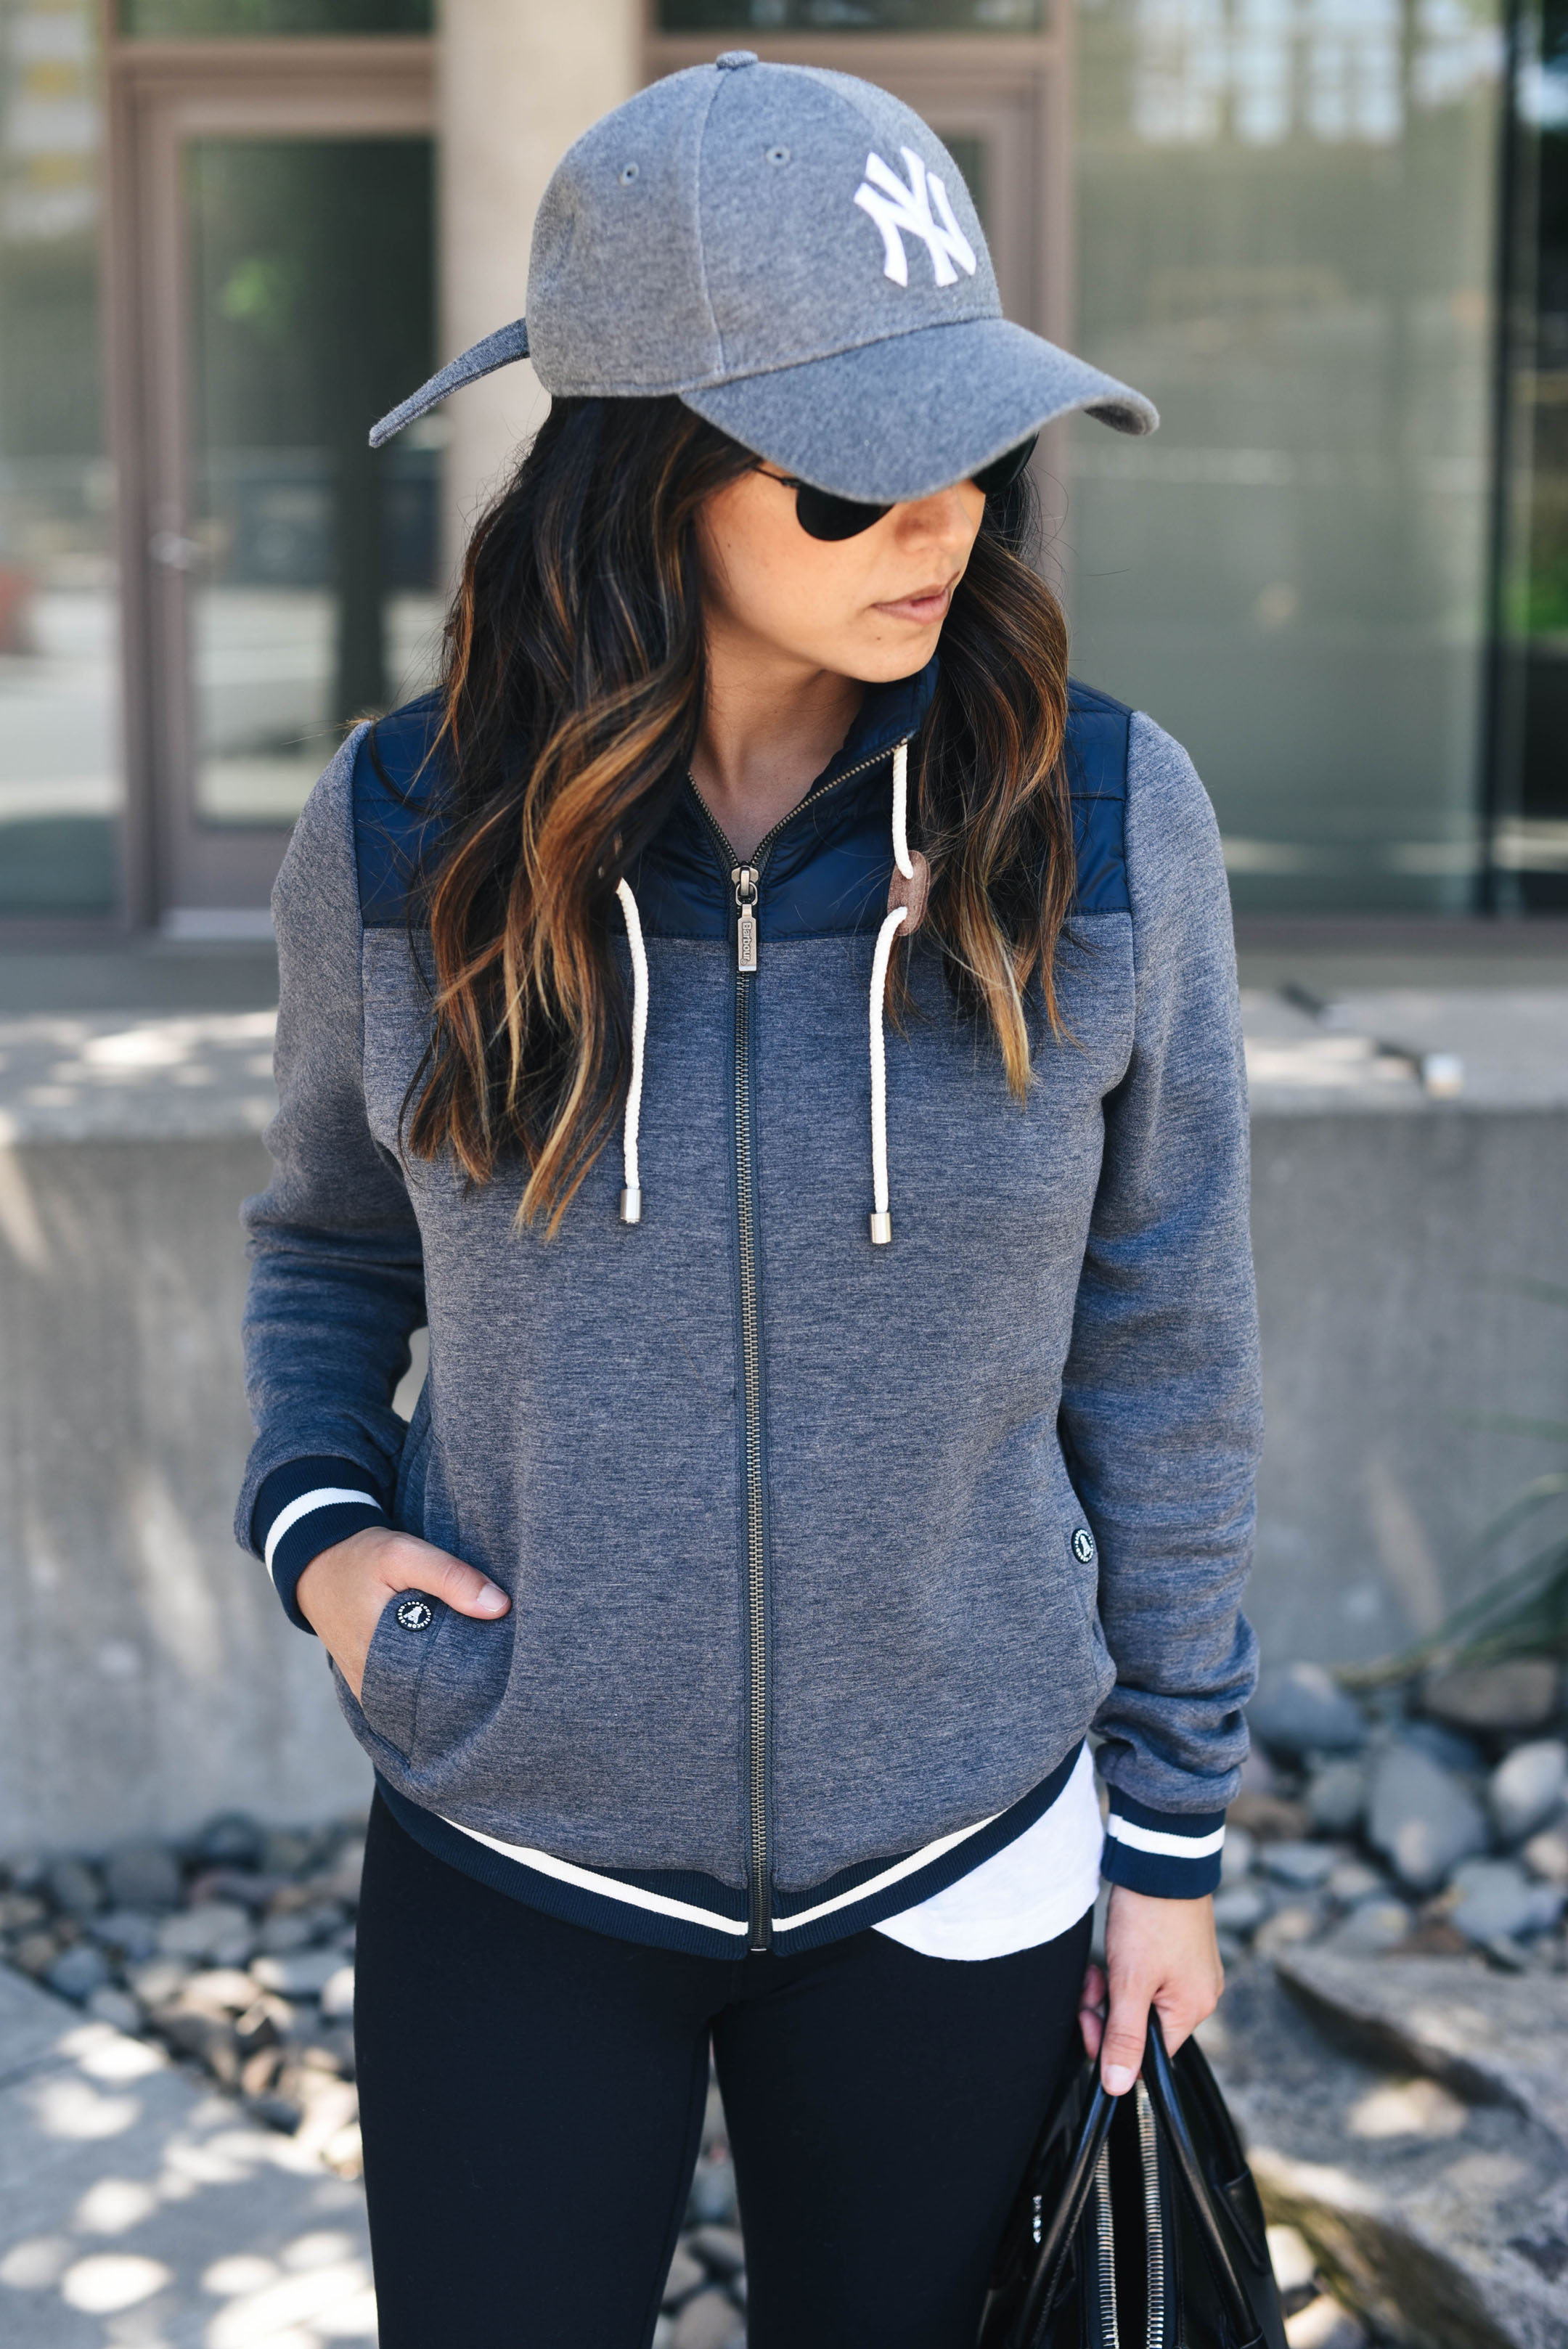 How to wear athleisure wear